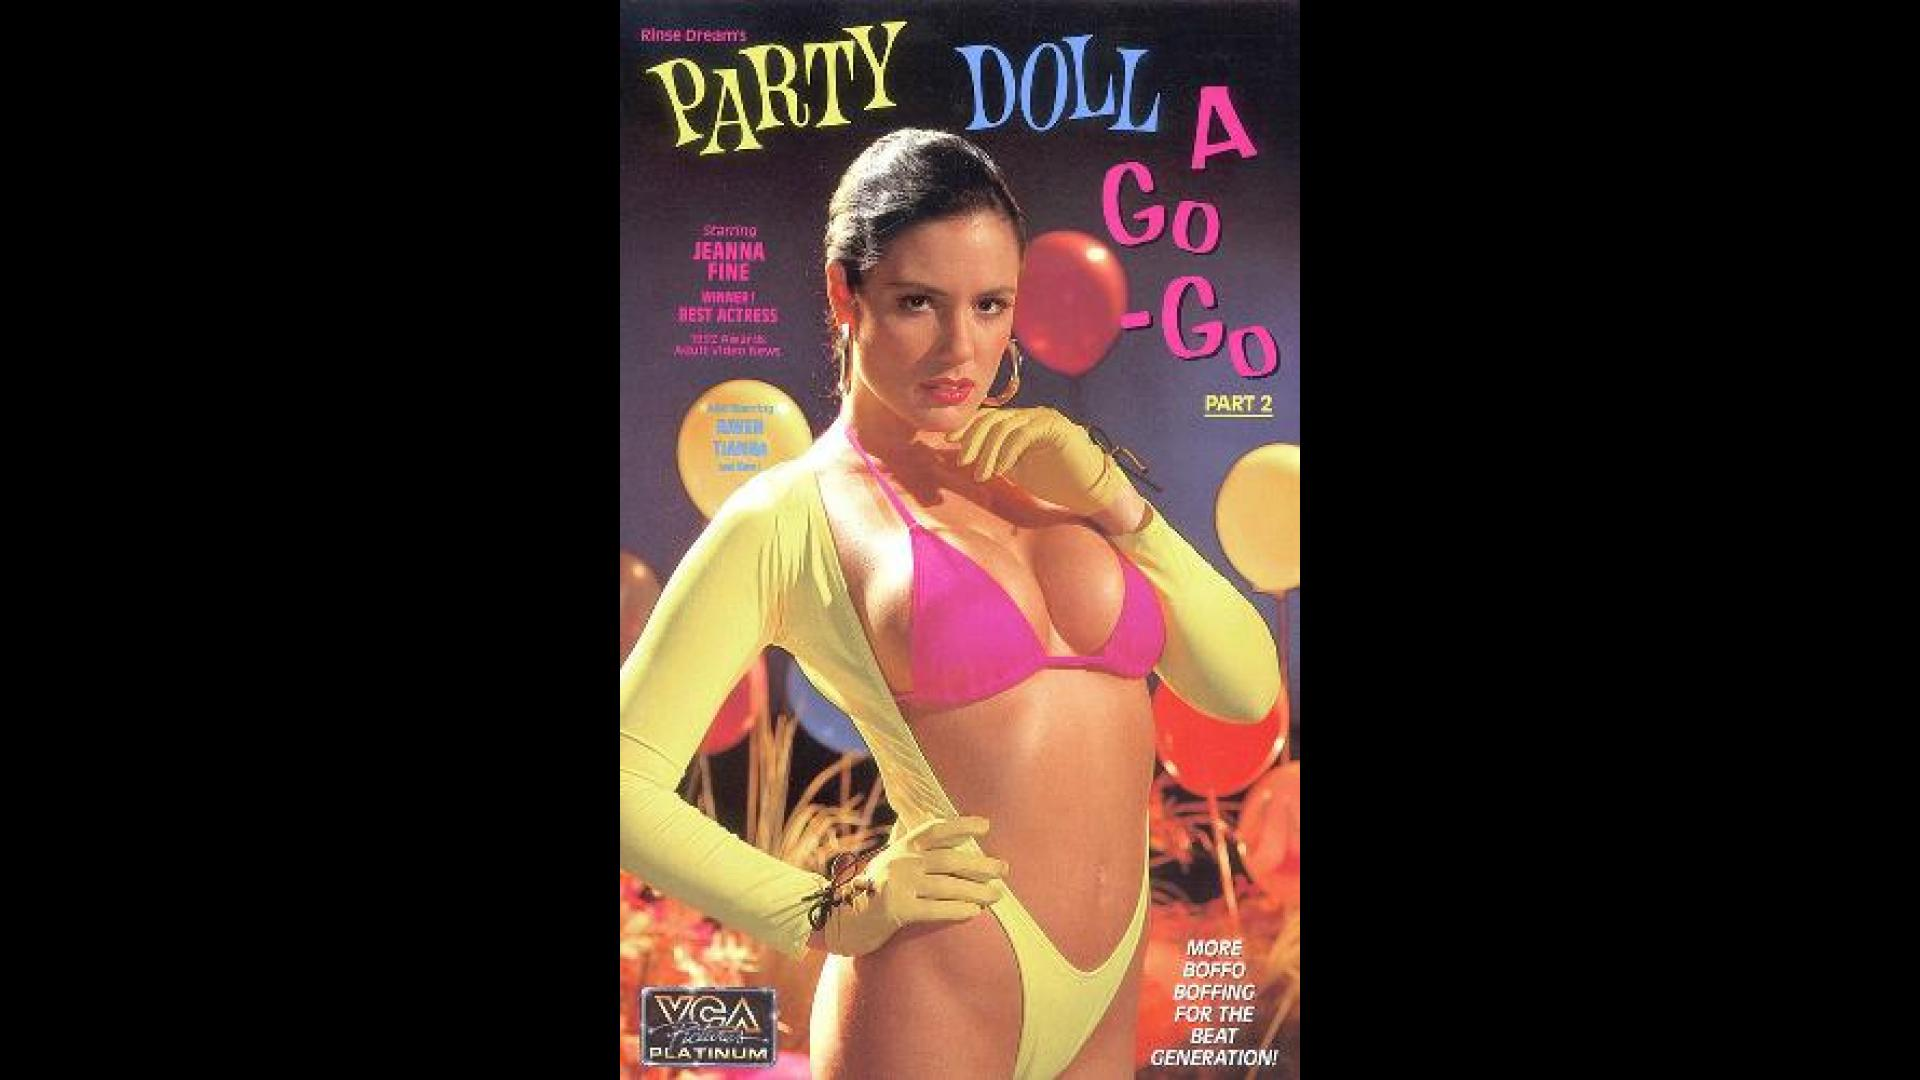 Party Doll A Gogo